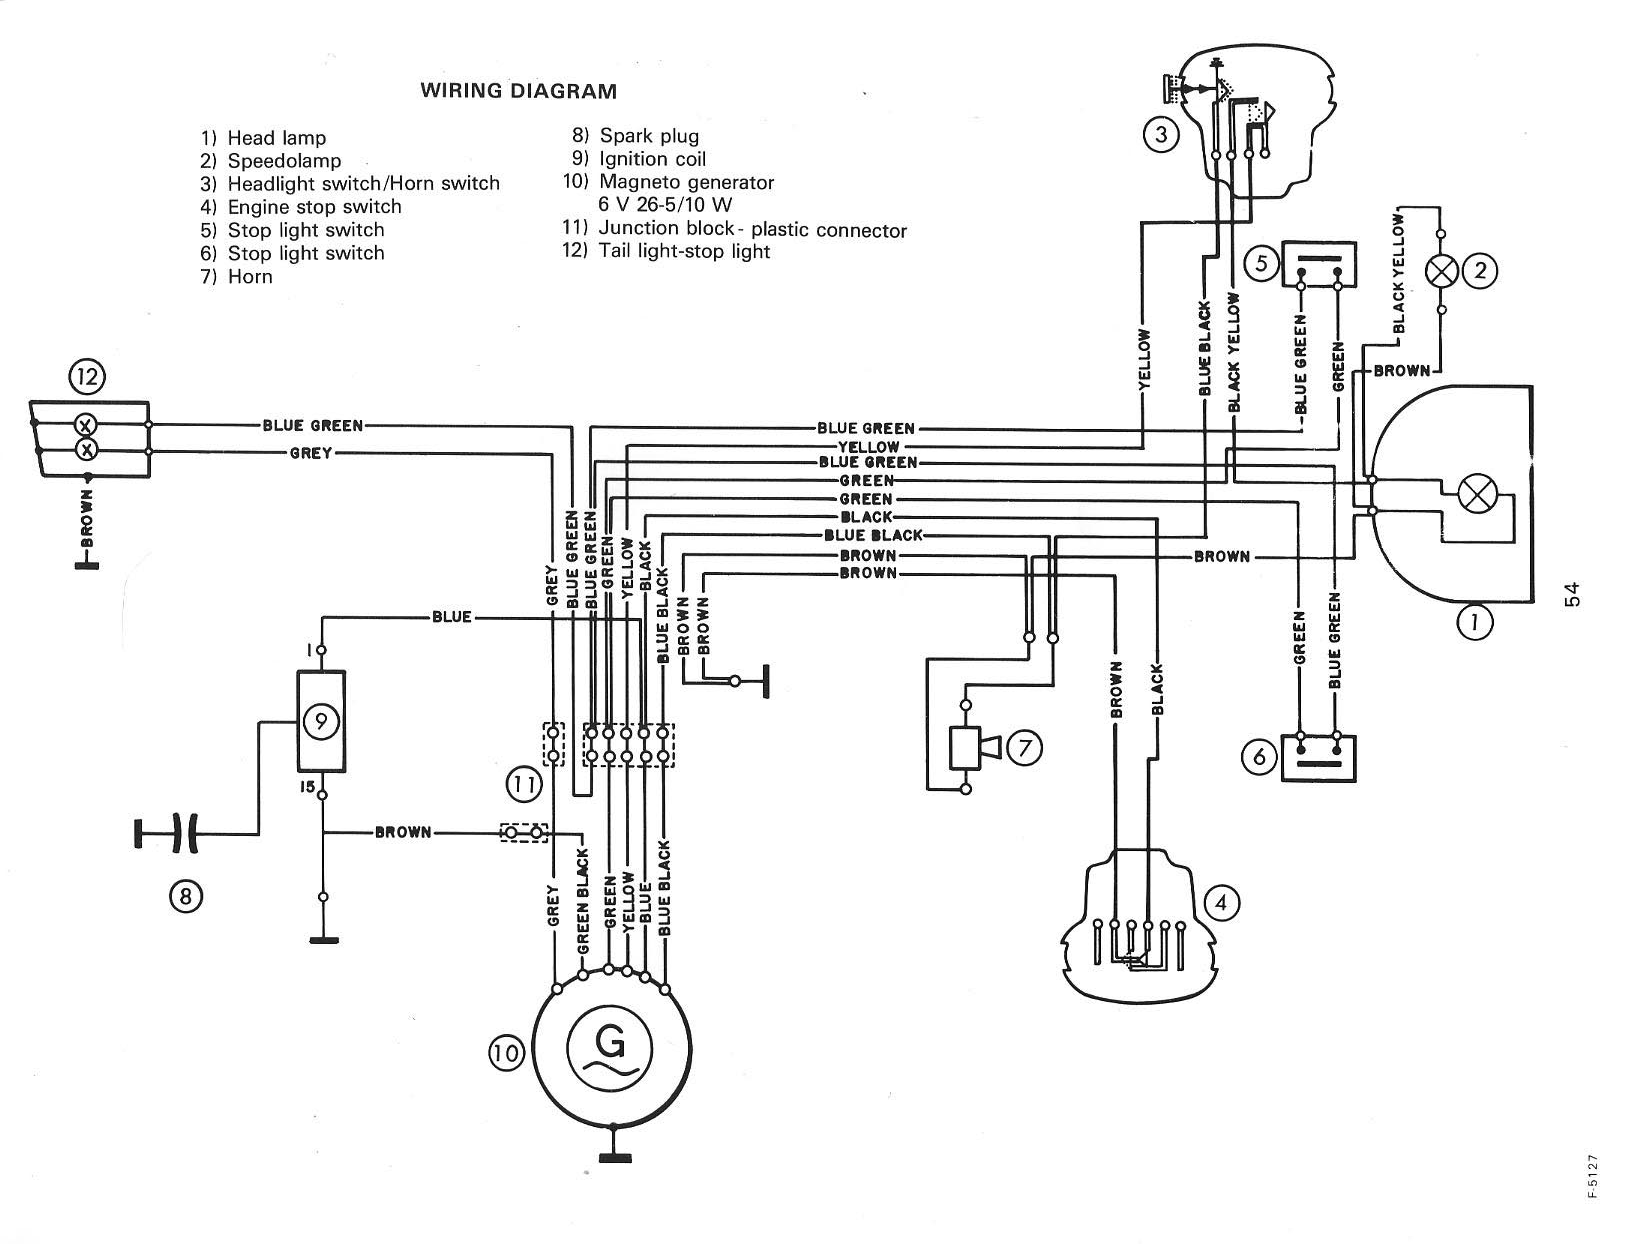 Puch Wiring Diagrams Moped Wiki Stop Switch Diagram Murray